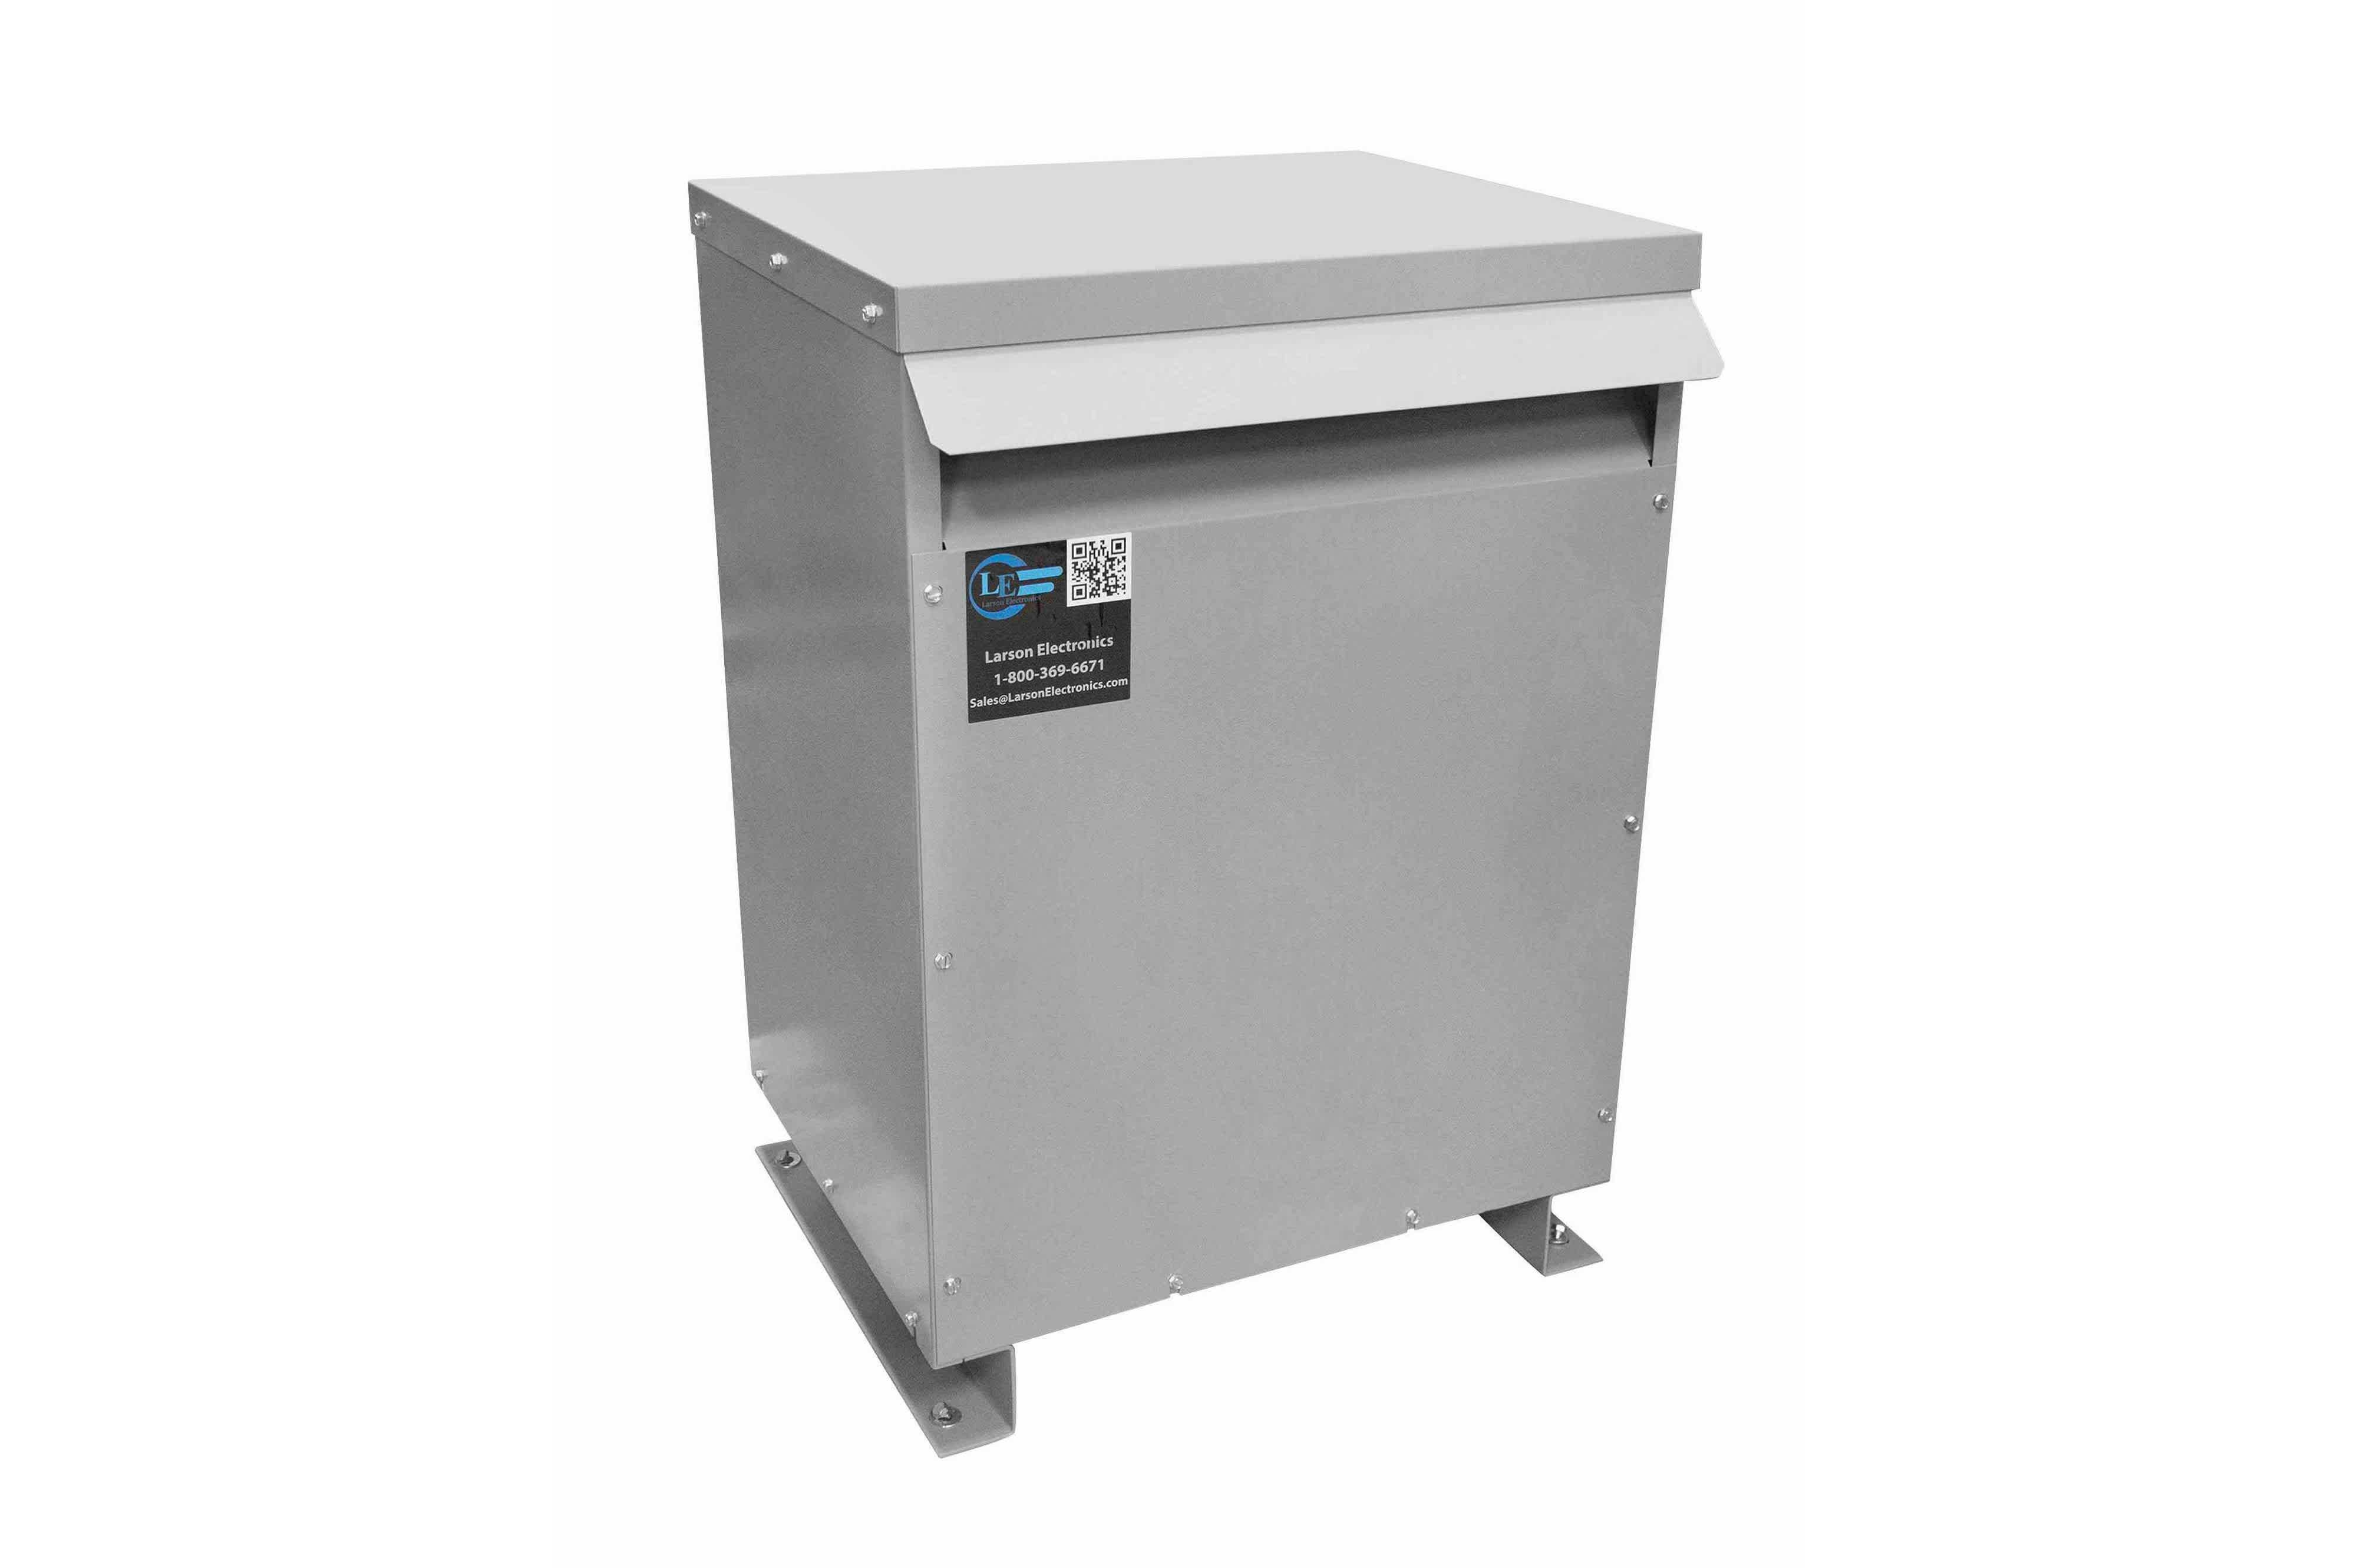 167 kVA 3PH Isolation Transformer, 208V Wye Primary, 415V Delta Secondary, N3R, Ventilated, 60 Hz